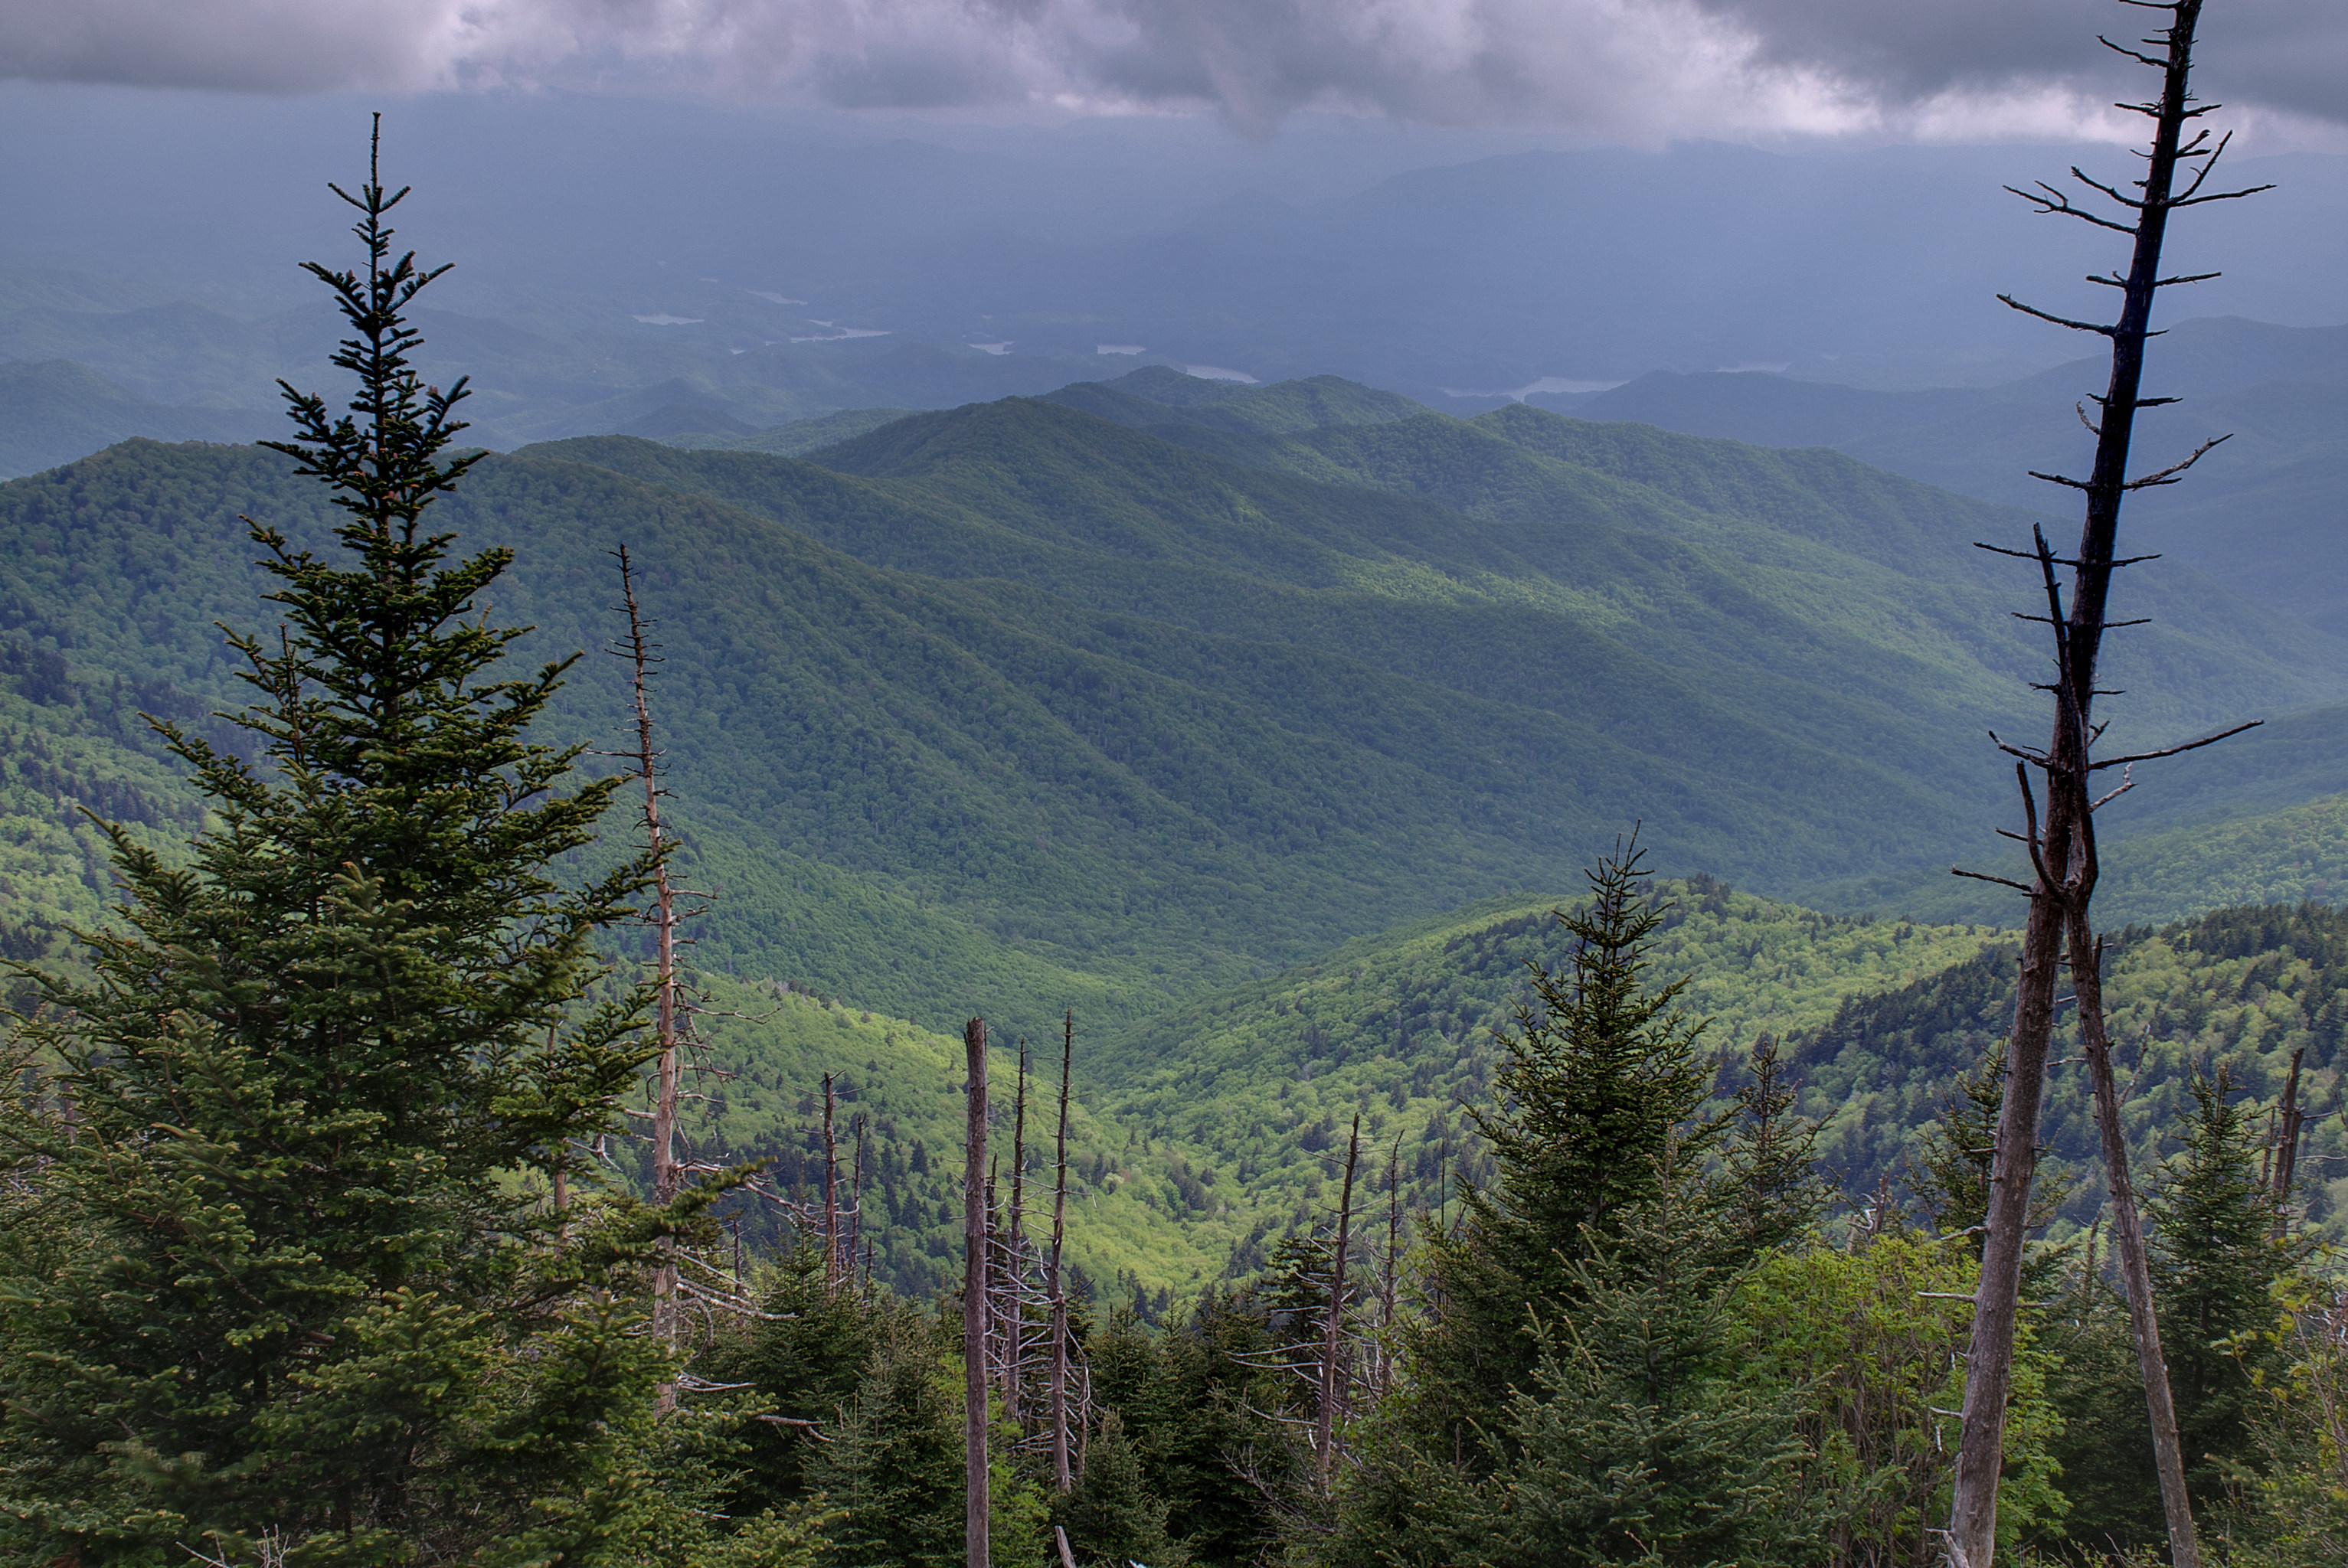 File:15-19-143, view from clingmans dome trail - panoramio ...